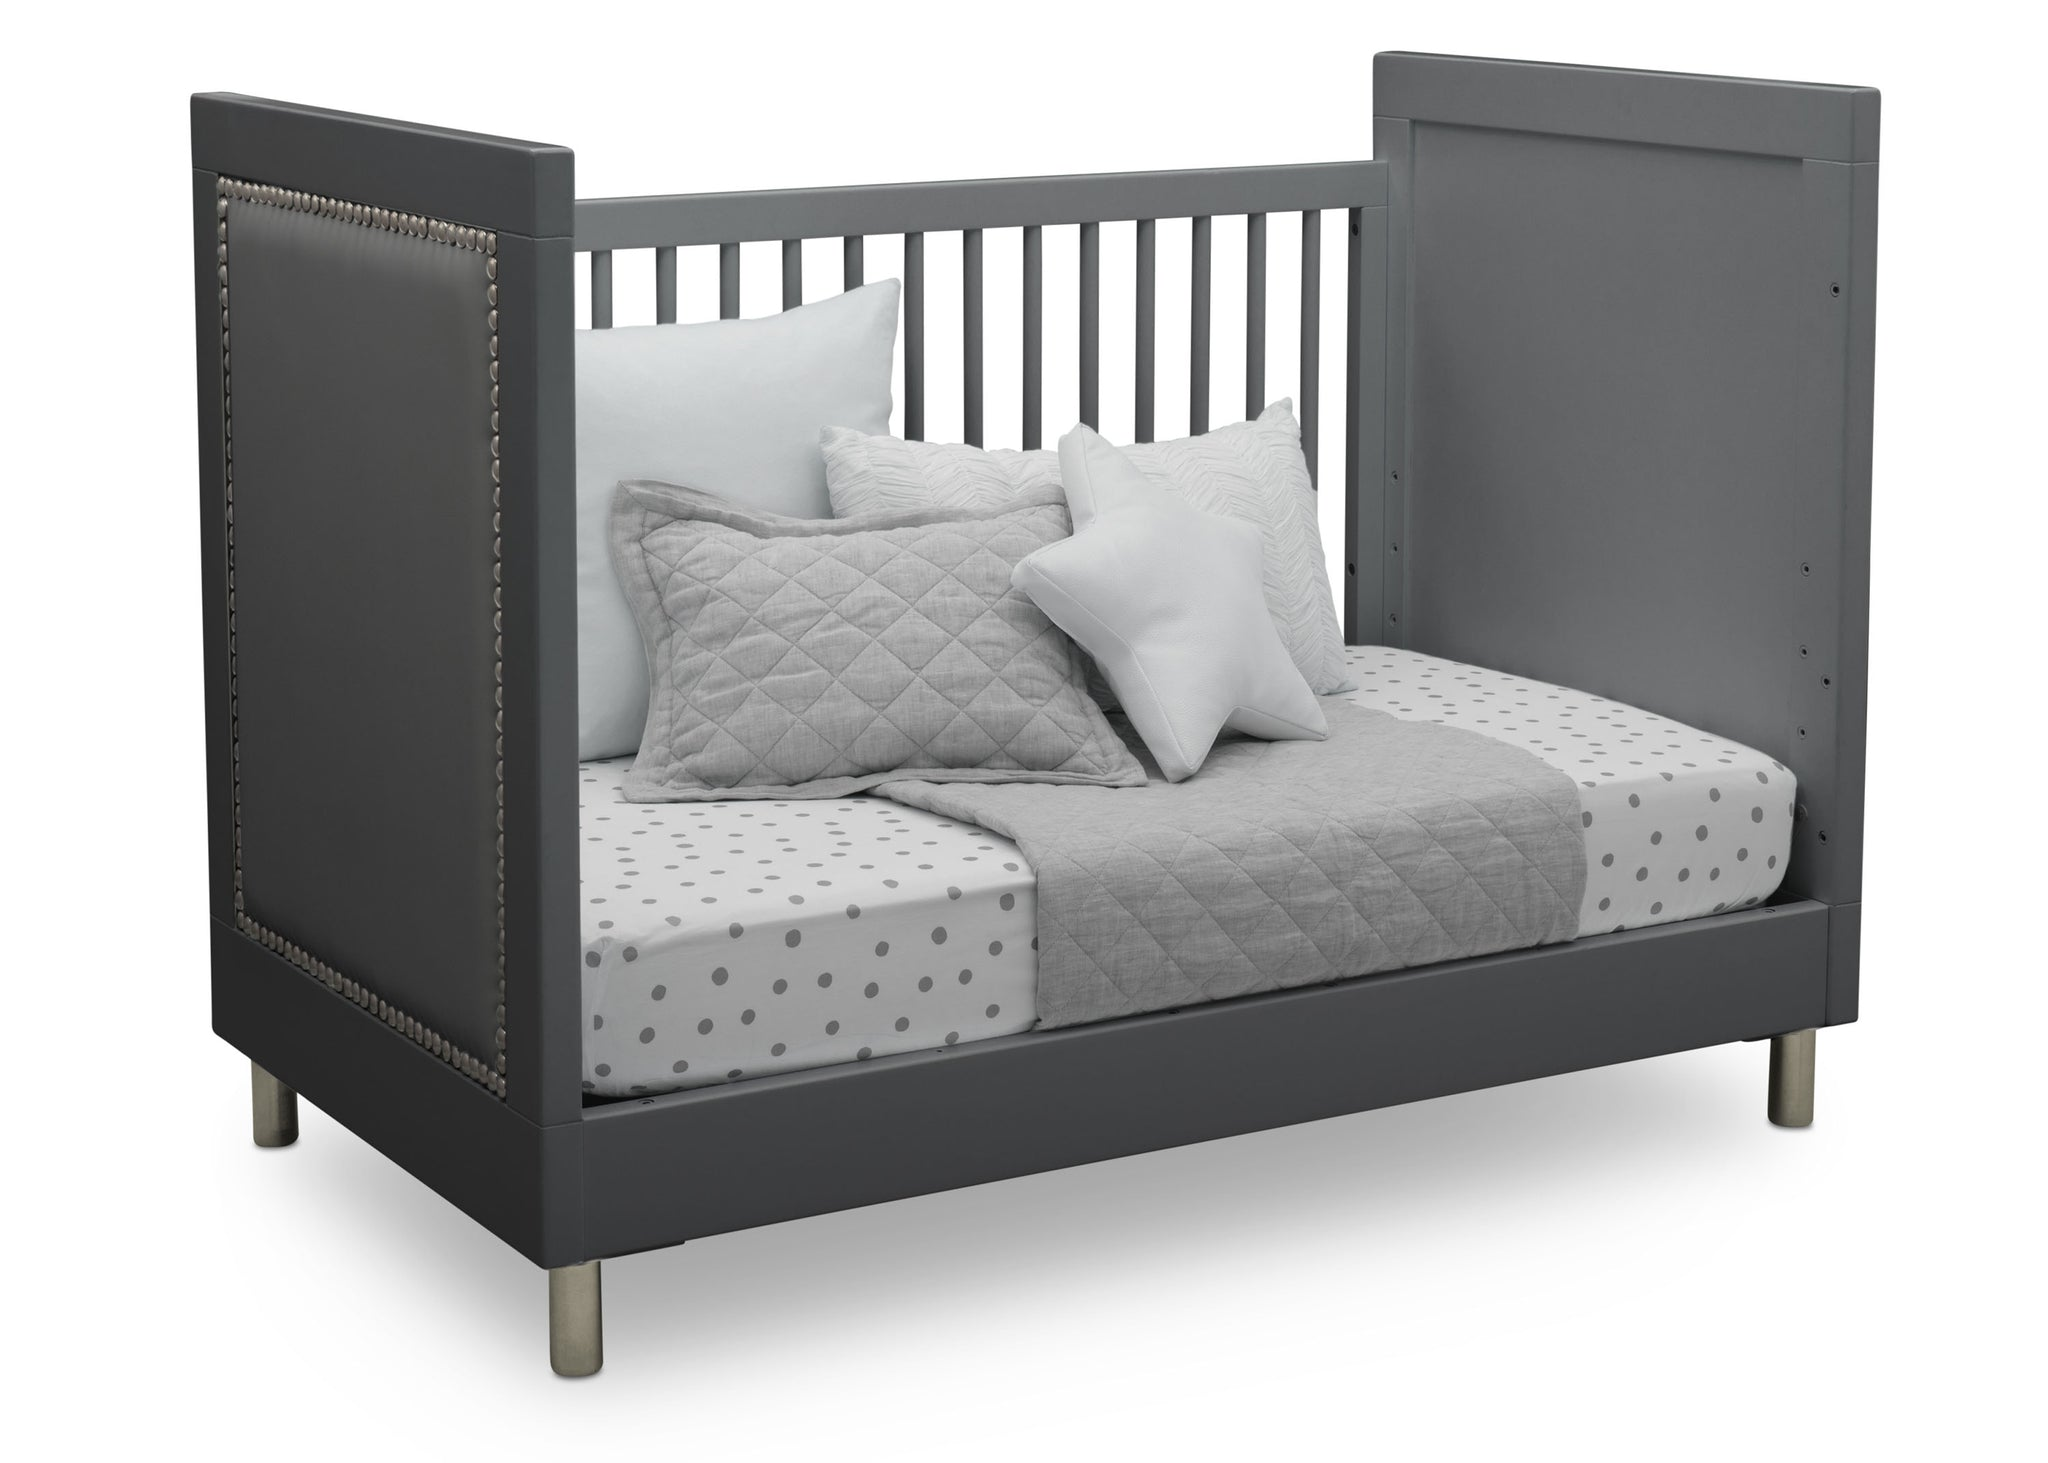 Simmons Kids Charcoal Grey (1323) Avery 3-in-1 Convertible Crib, Right Day Bed Silo View